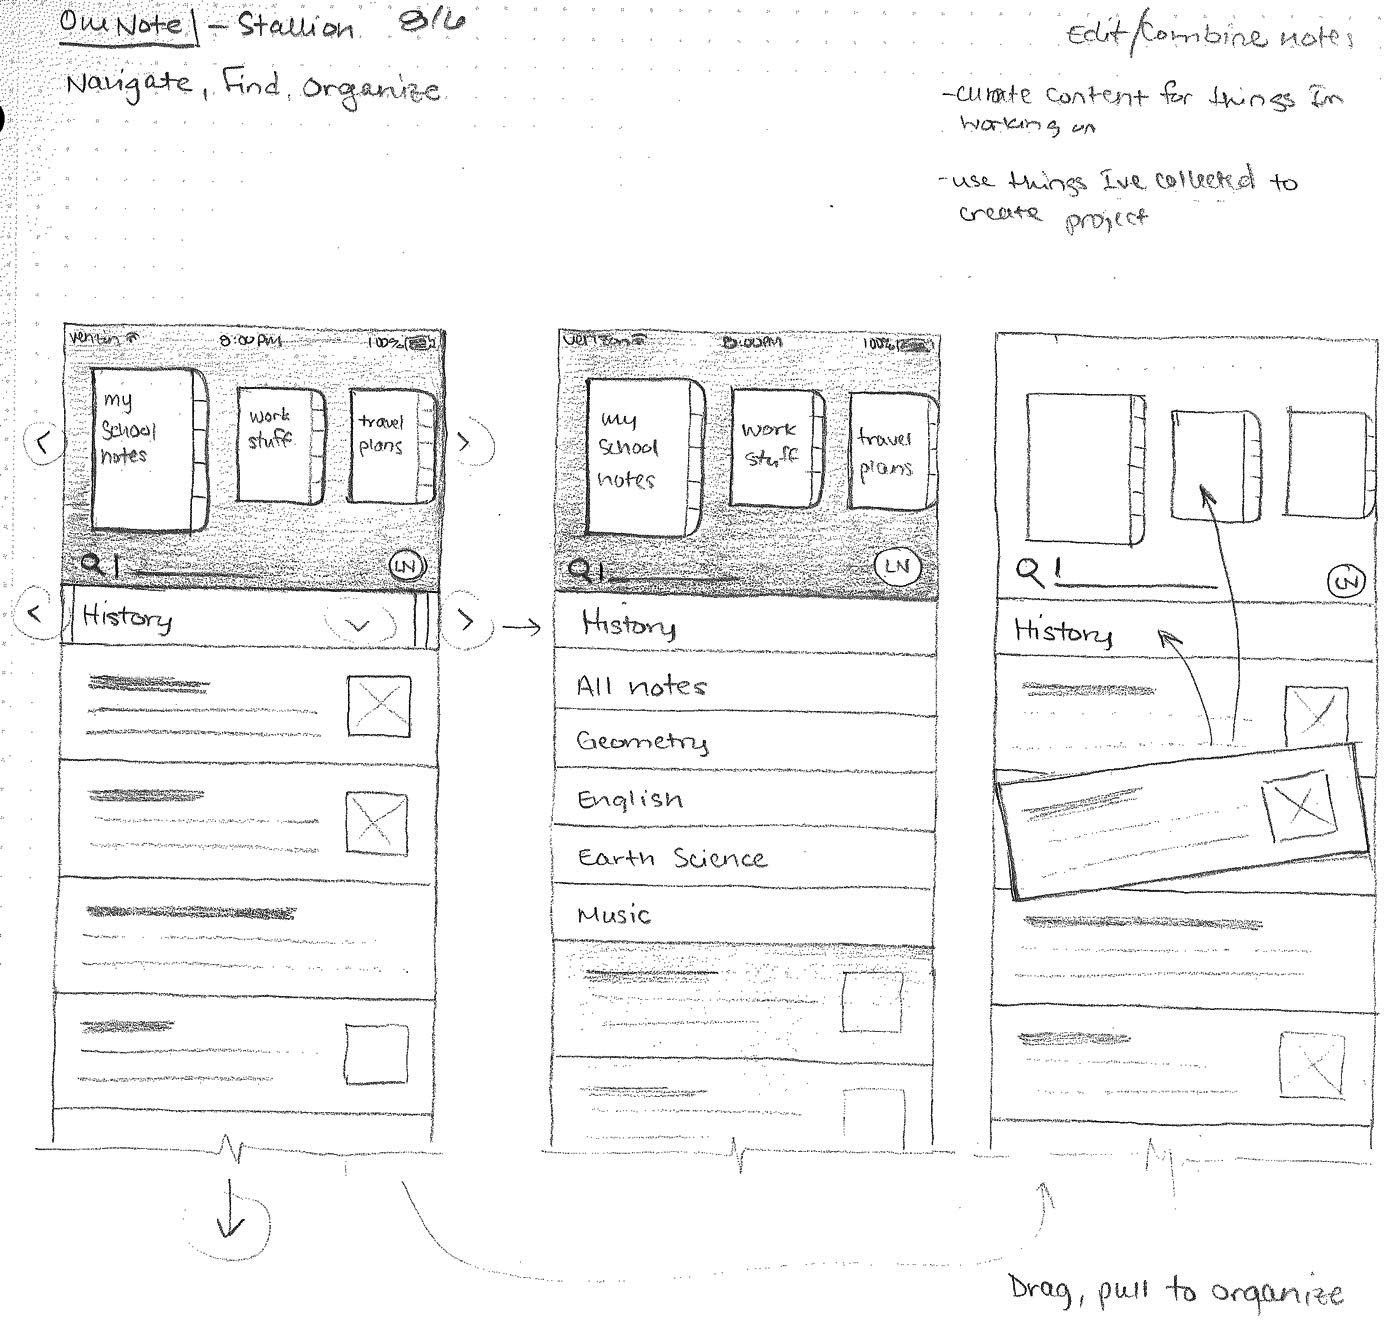 Scan of a sketchbook page illustrating ways of find your notes in the app